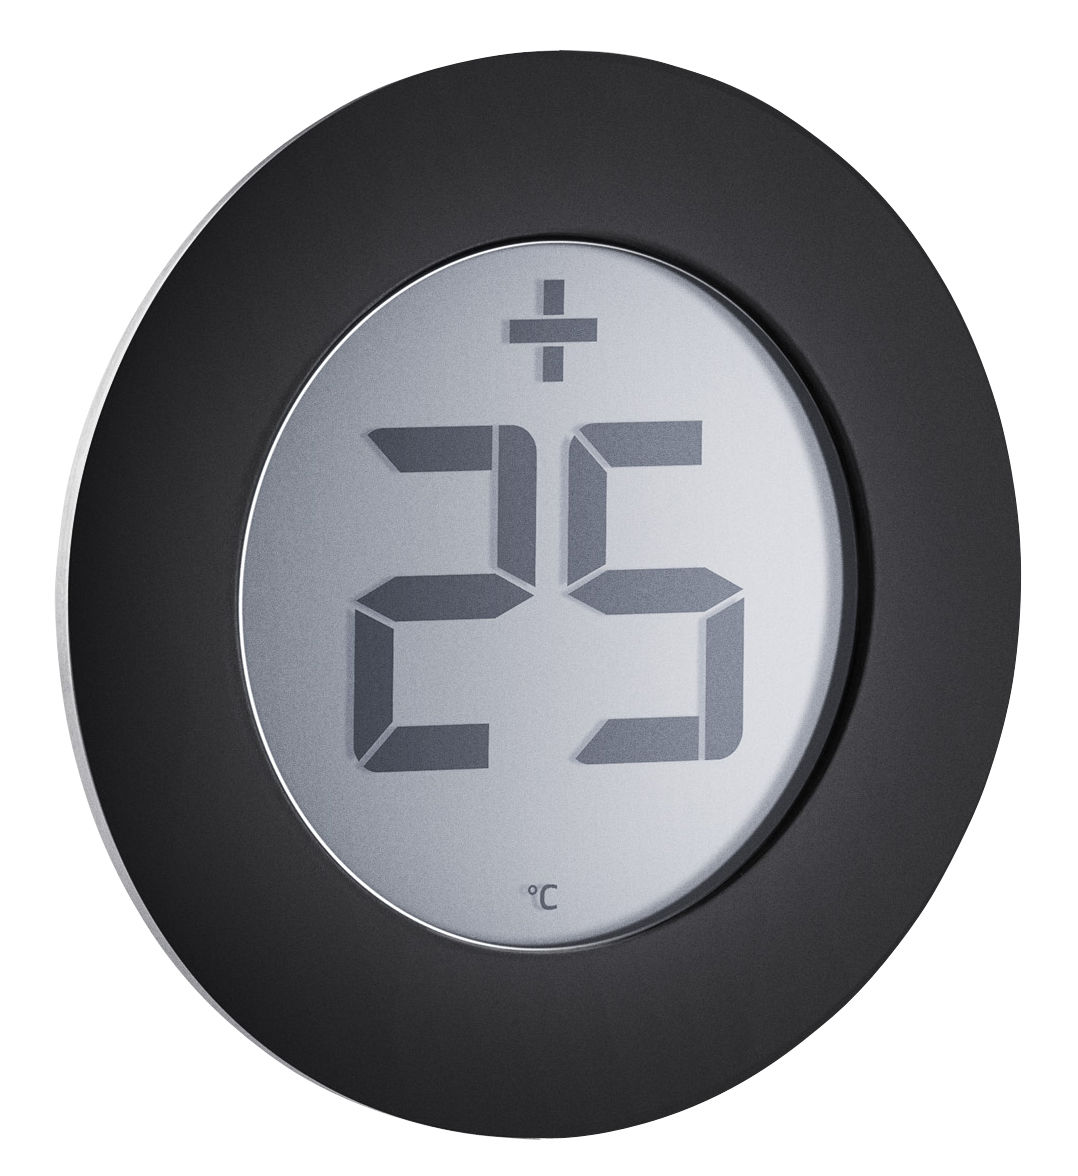 Outdoor - Ornaments & Accessories - Outdoor thermometer - / Sticker - For window by Eva Solo - Steel & black - Steel, Thermoplastic